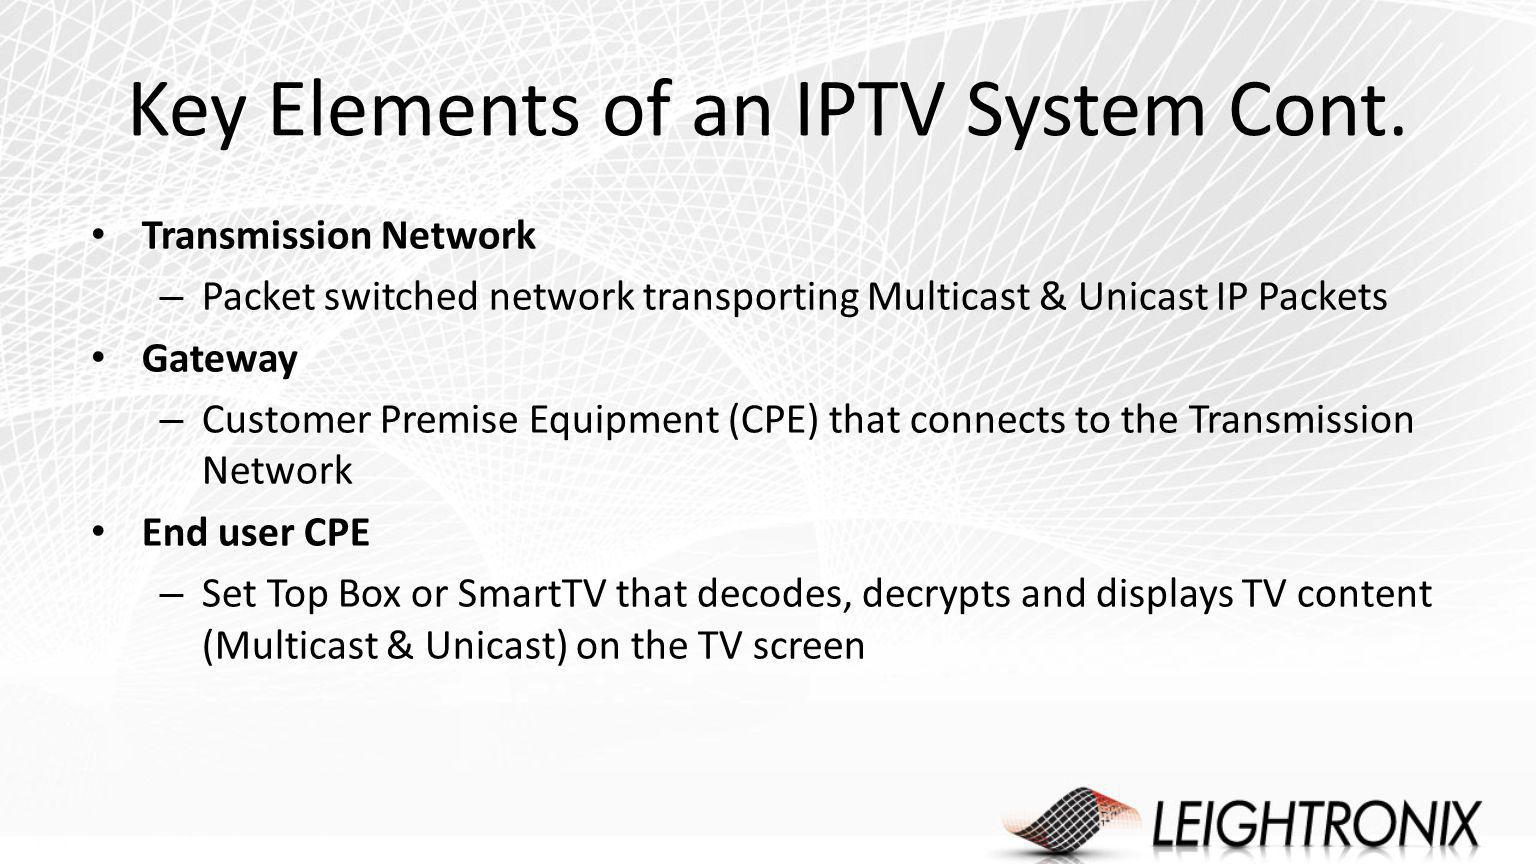 Key Elements of an IPTV System Cont.